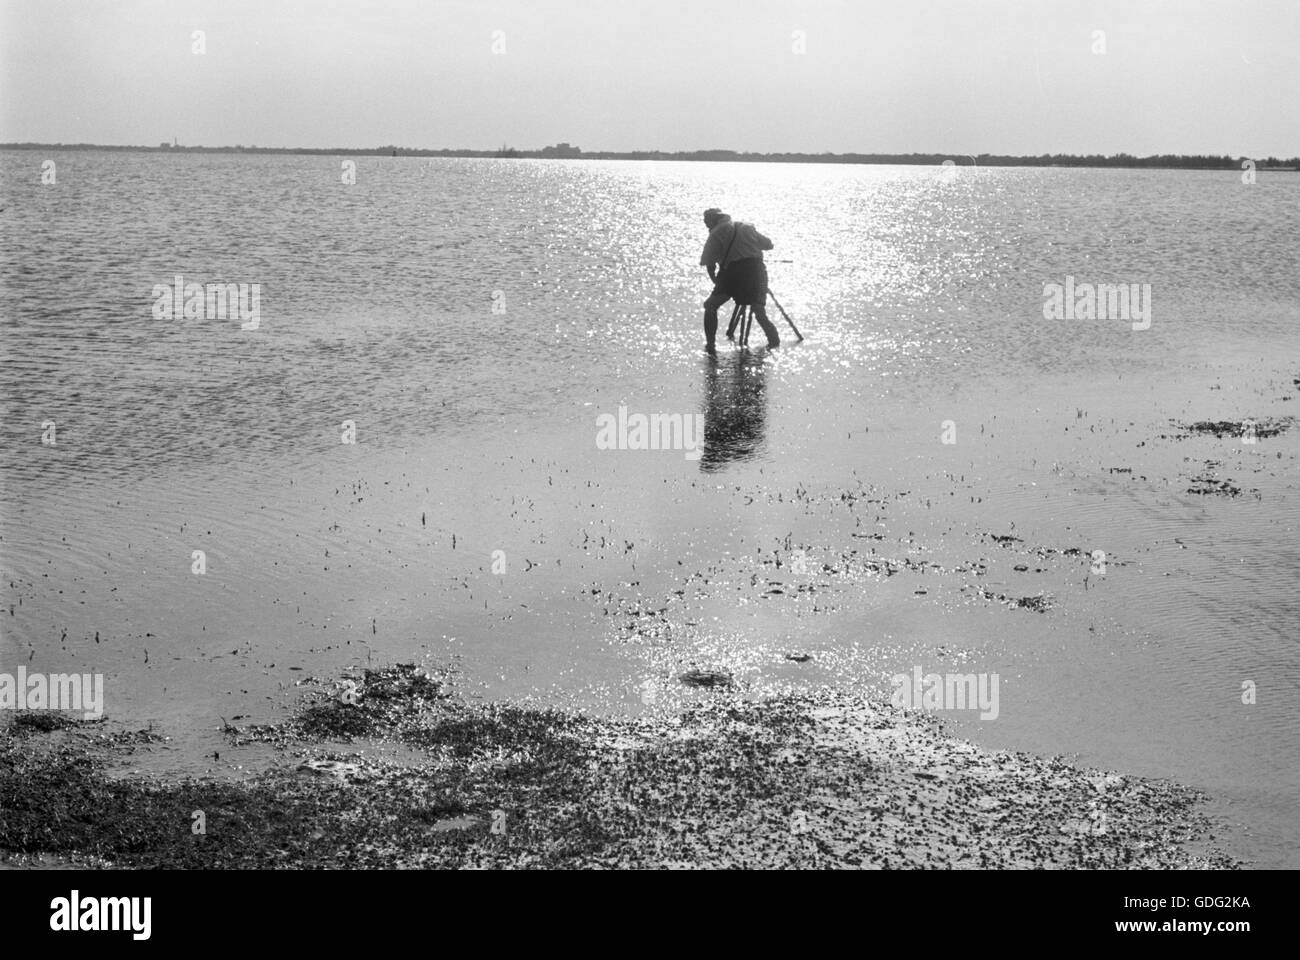 Roman Vishniac, collecting and filming biological samples, 1961 - Stock Image